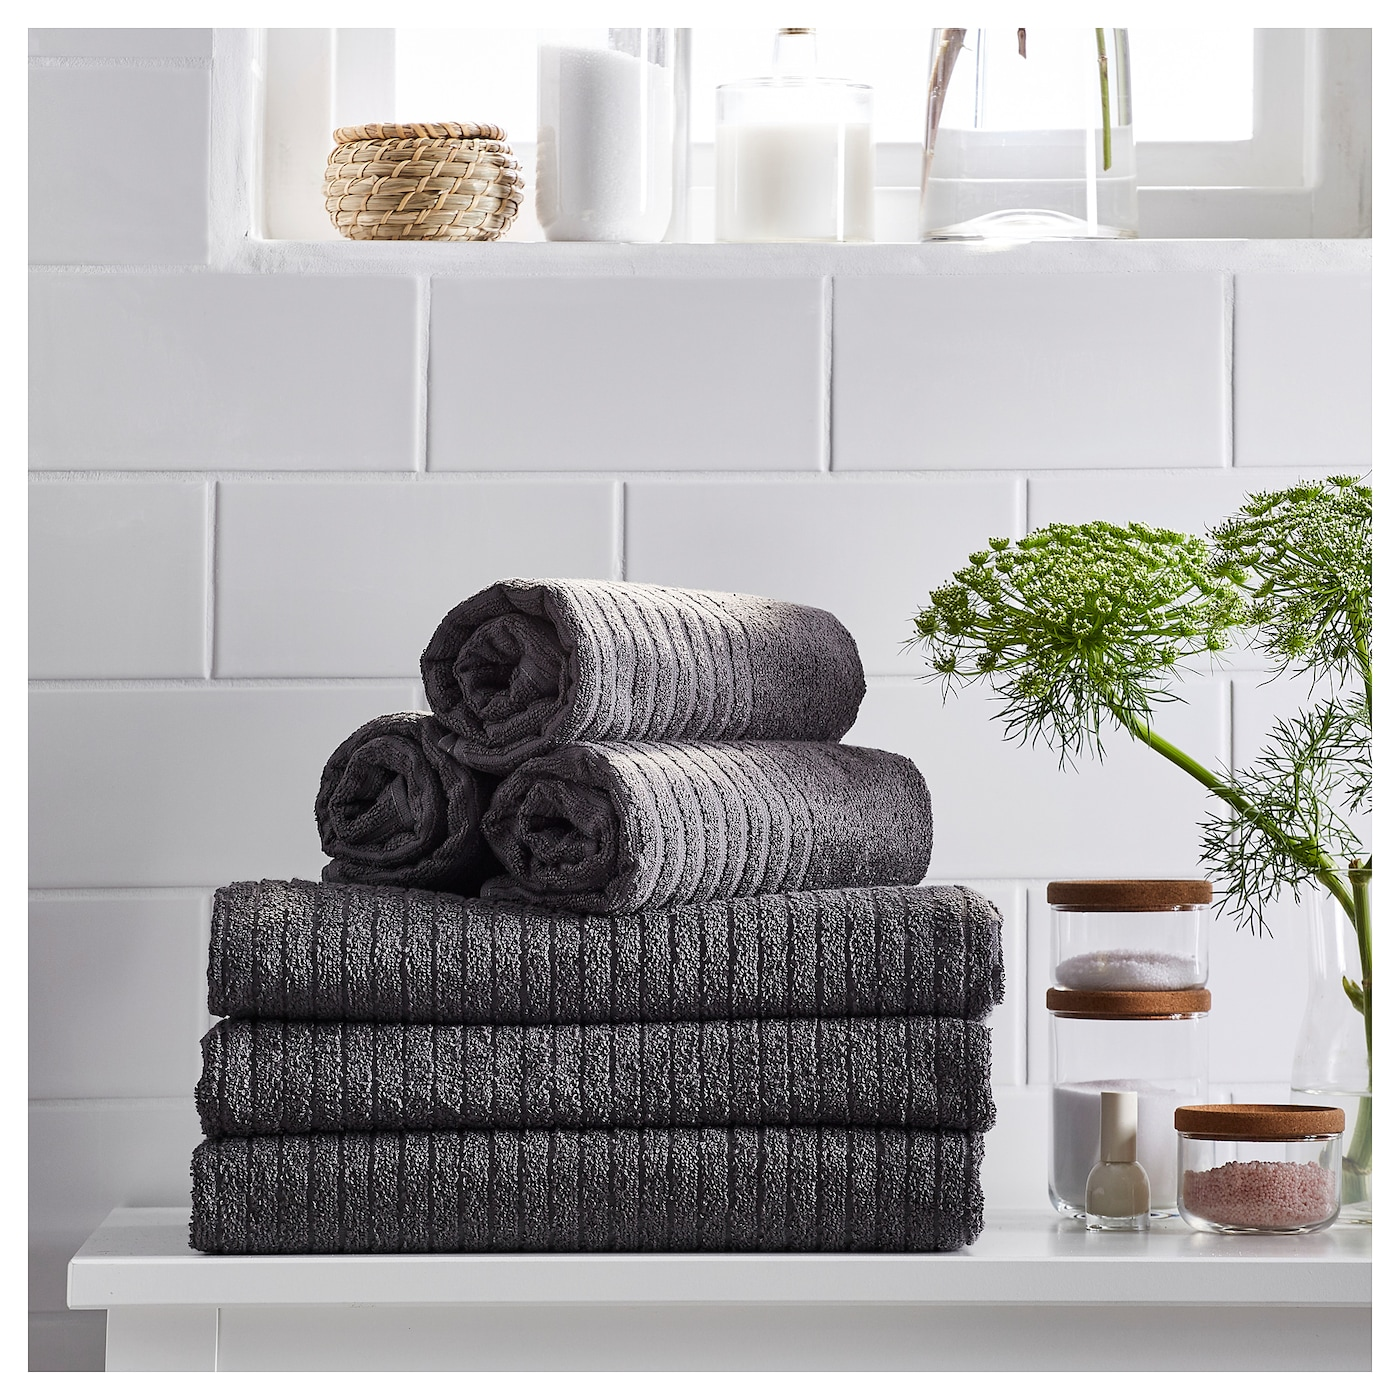 IKEA VÅGSJÖN hand towel A terry towel that is soft and absorbent (weight 390 g/m²).